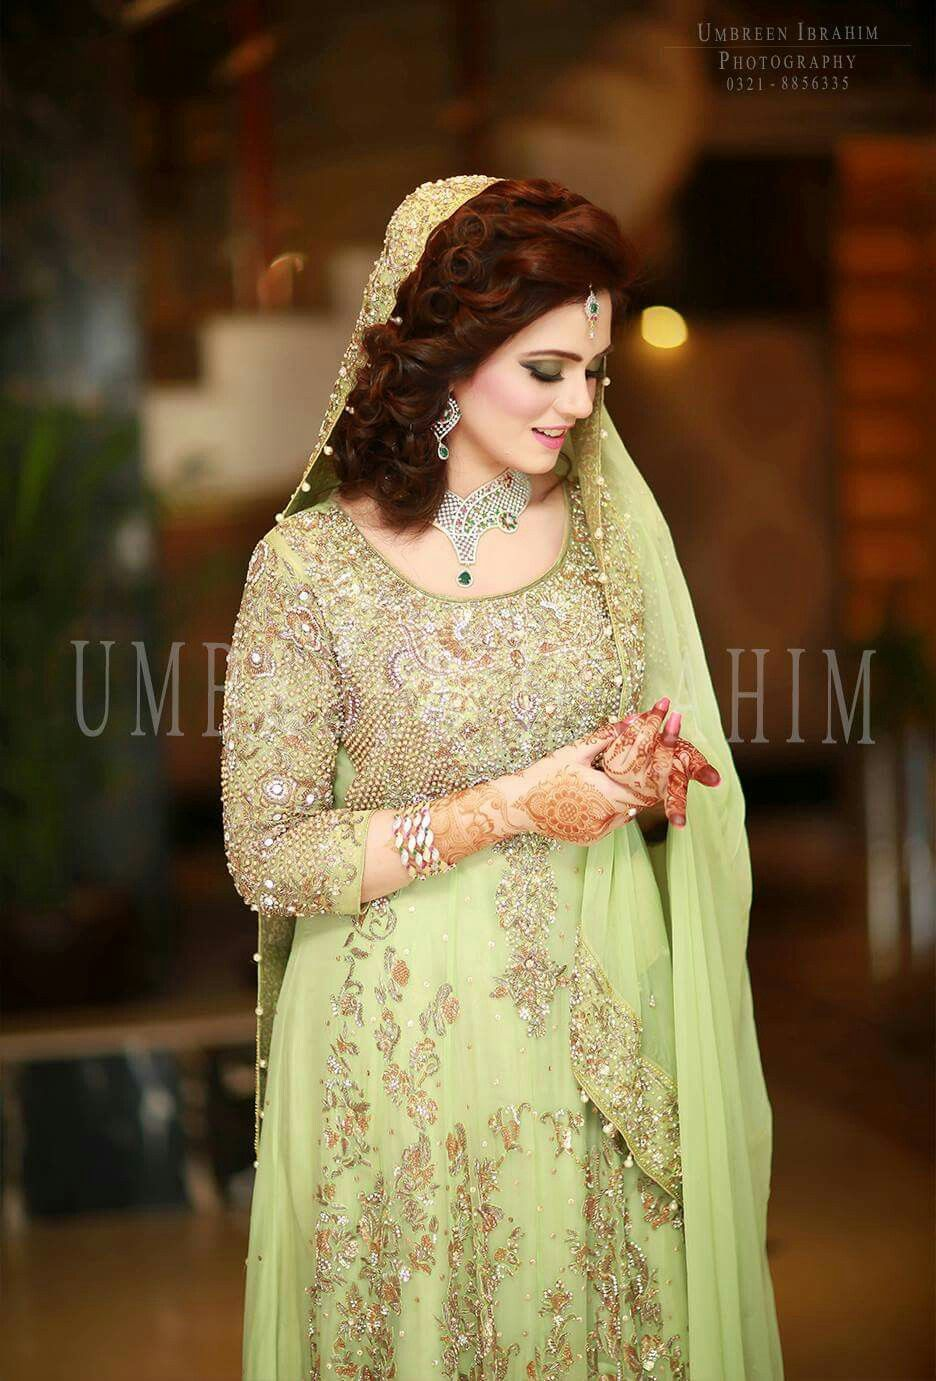 Pin by Amna Qureshi on Clothes | Pinterest | Walima, Eye and Clothes